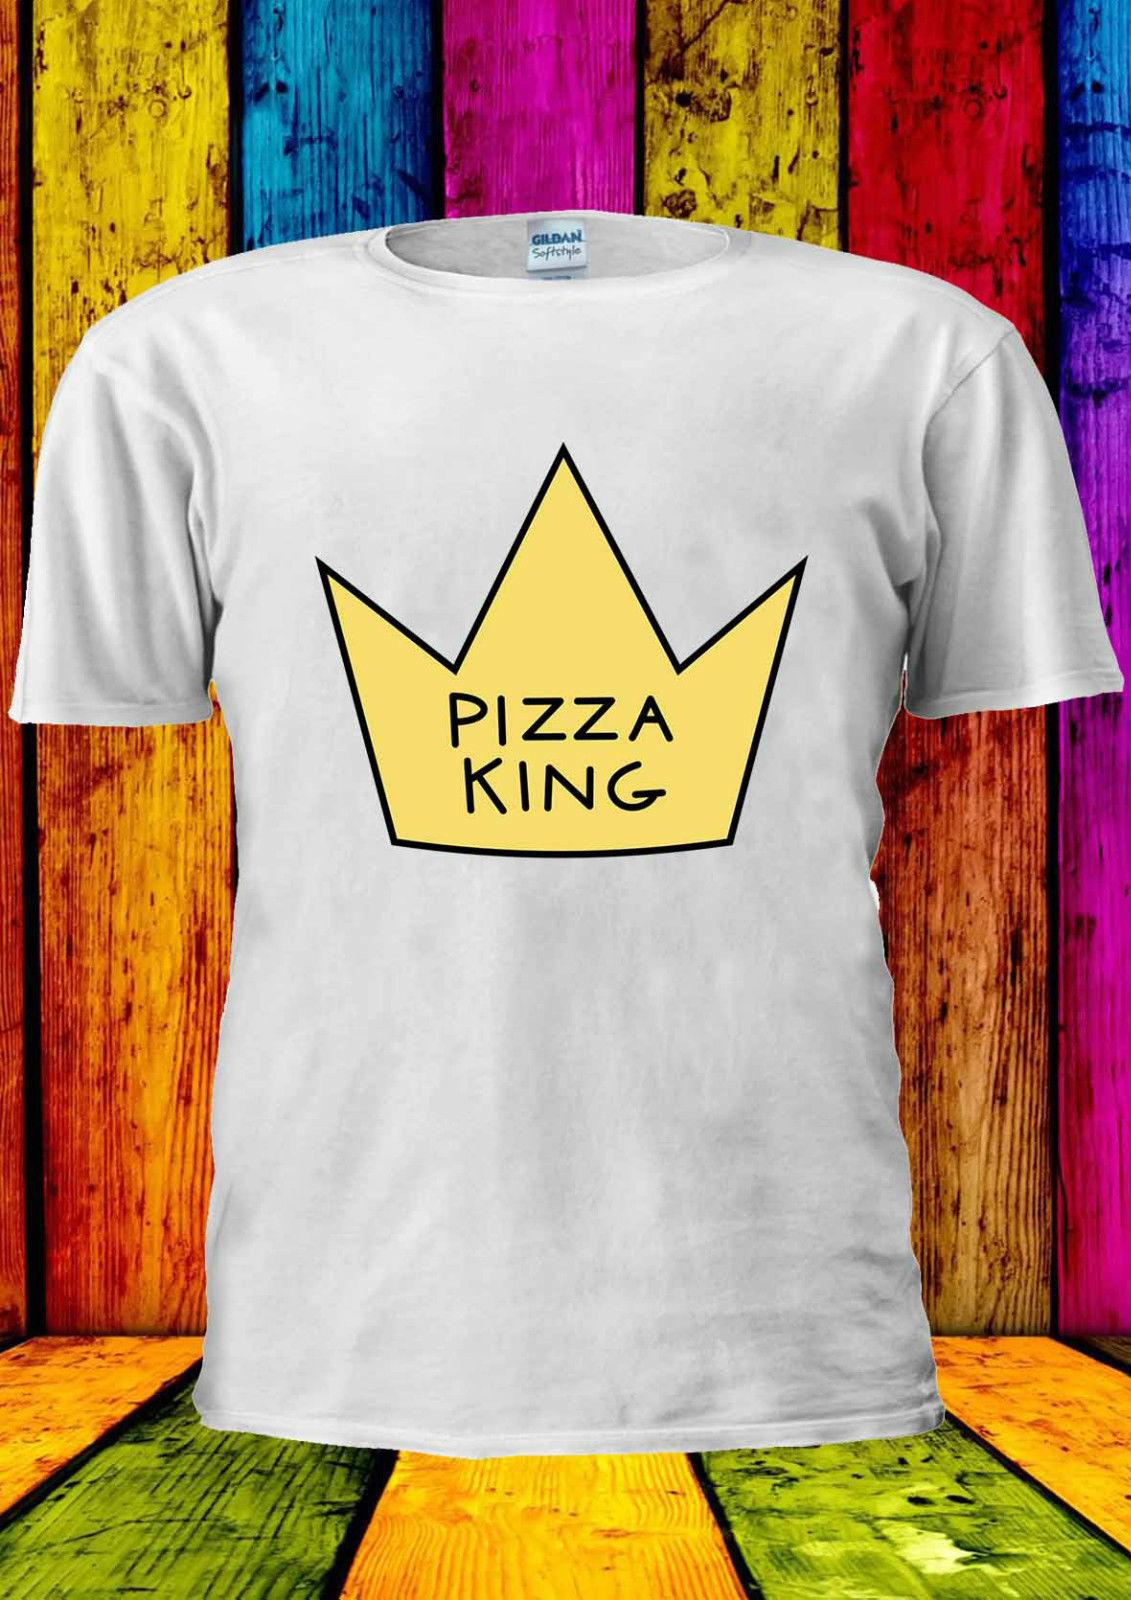 3fc1067c Pizza King Crown Of A Pizza Funny T Shirt Vest Tank Top Men Women Unisex  1732 Hipster O Neck Casual Short Sleeve Leisure Fashion Shirt And Tshirt  Create ...